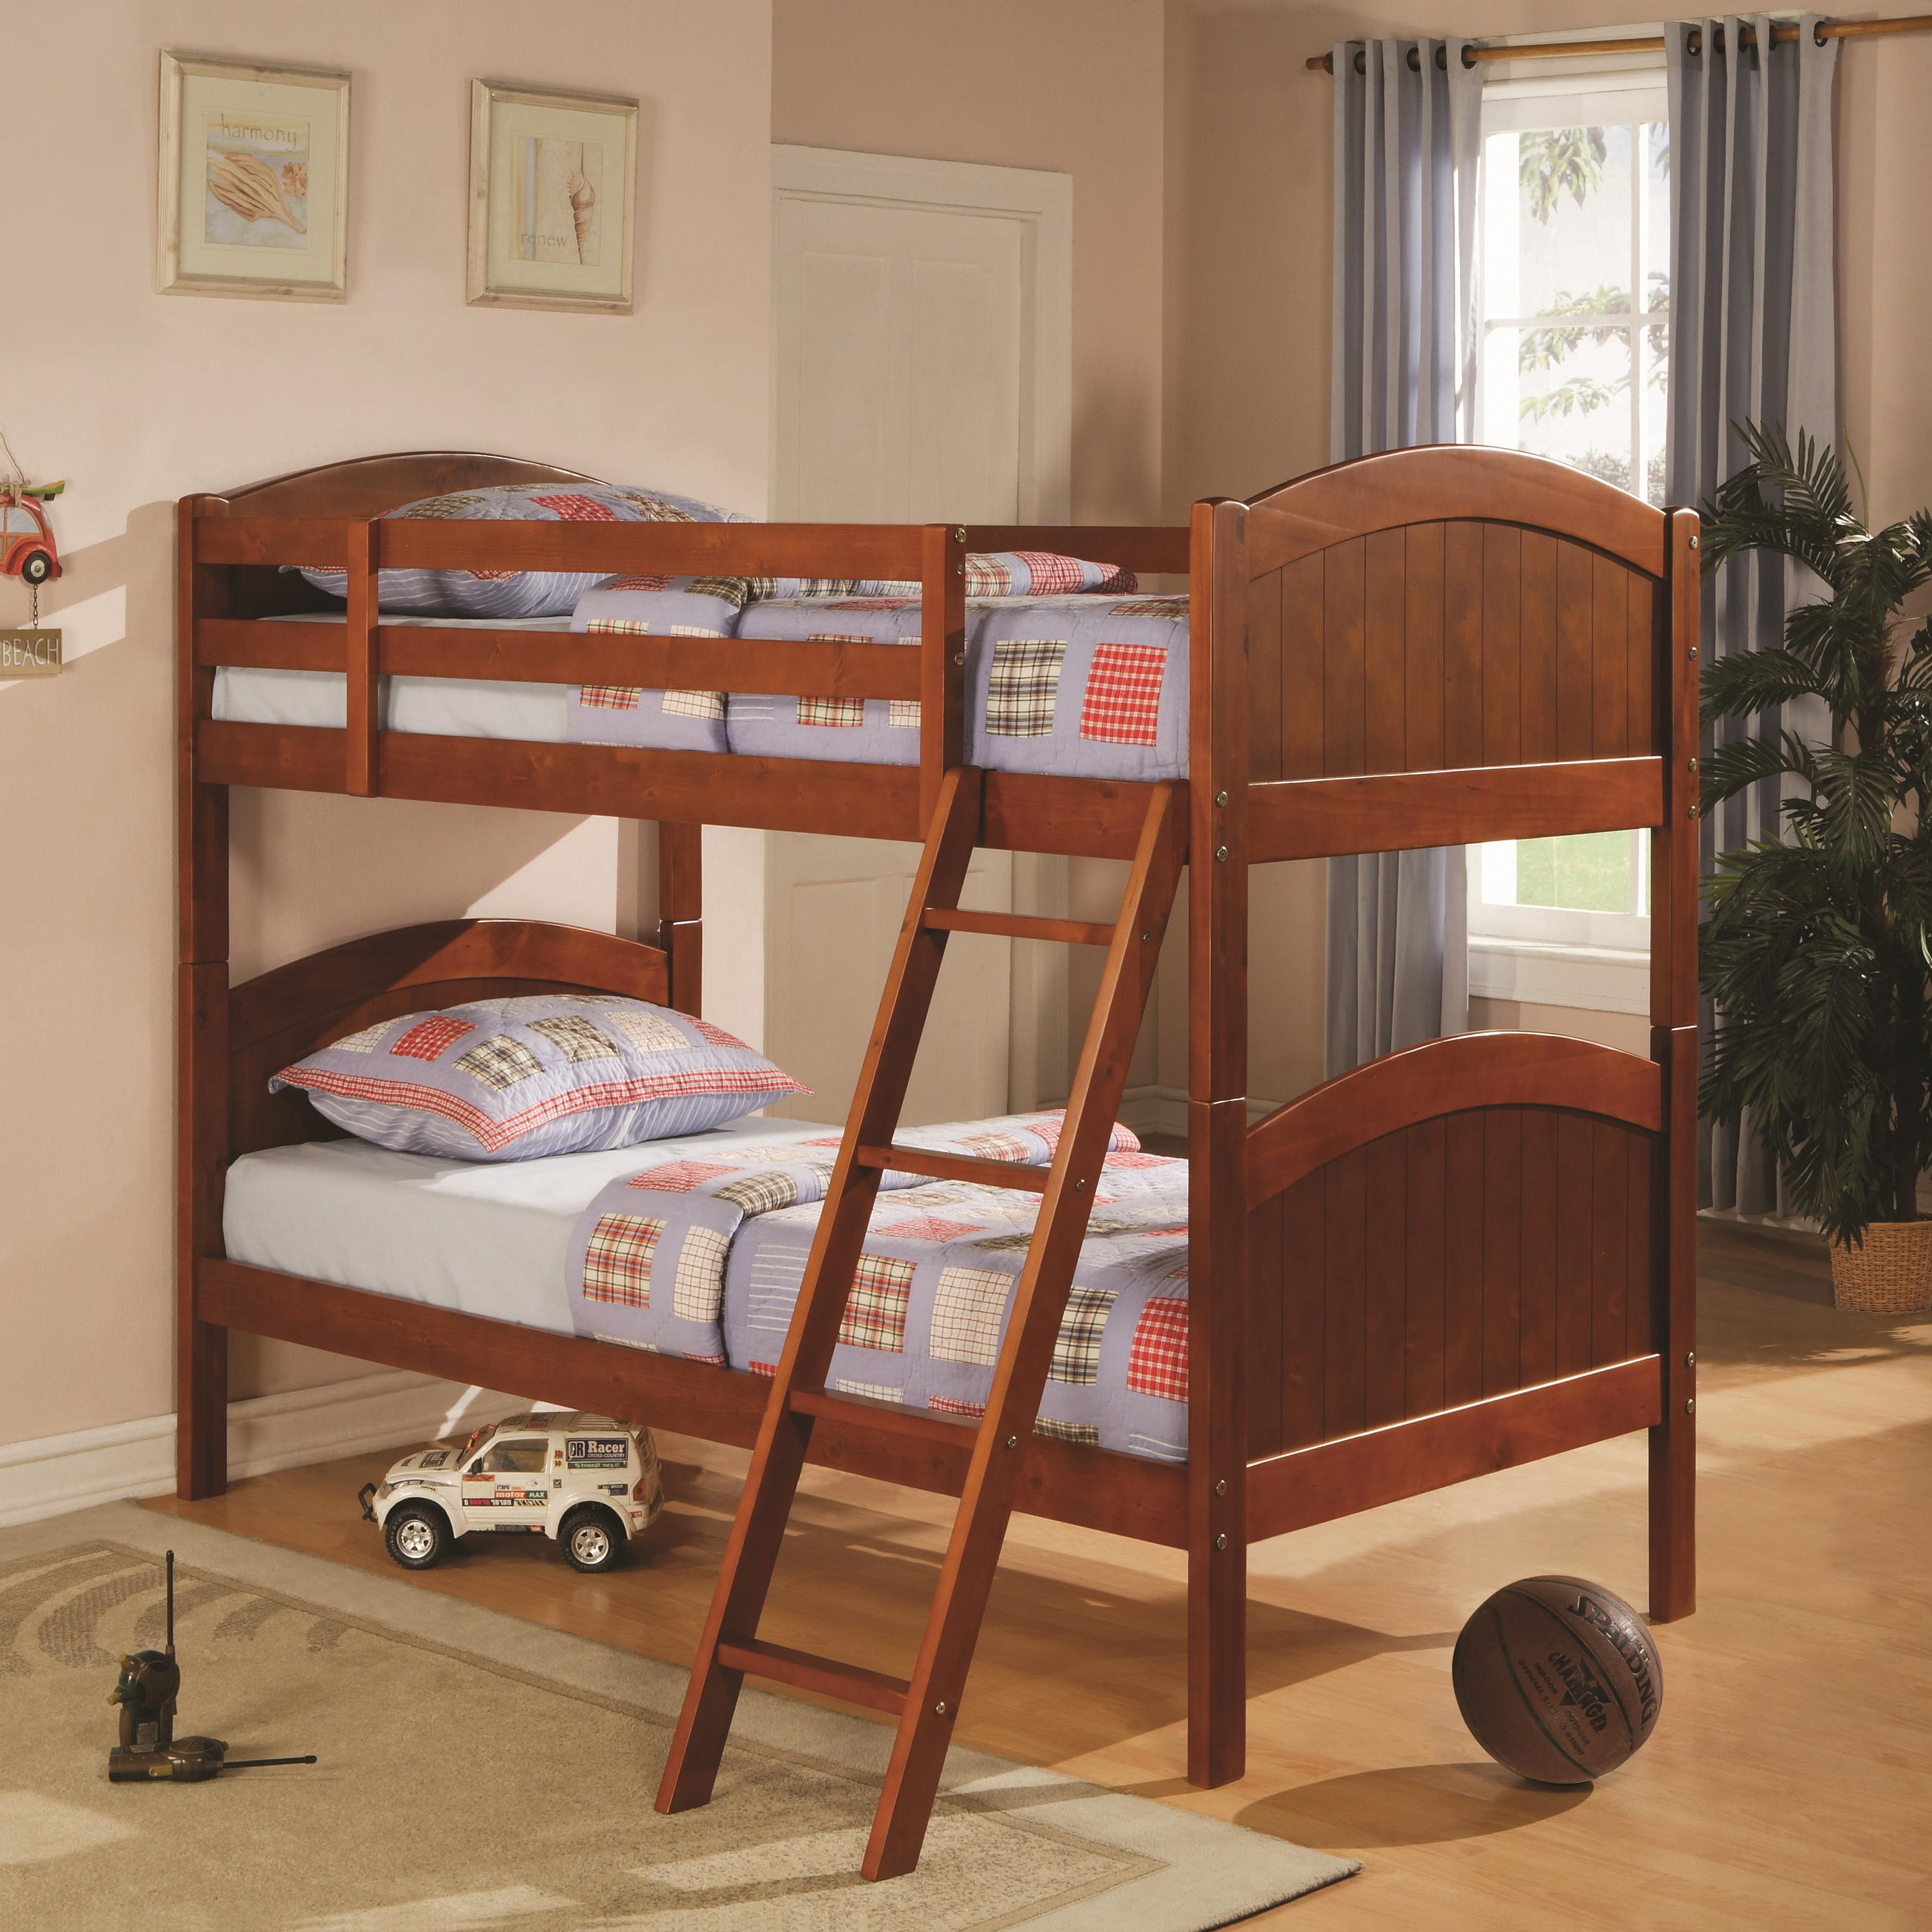 Coaster Bunks Twin Bunk Bed - Item Number: 460203